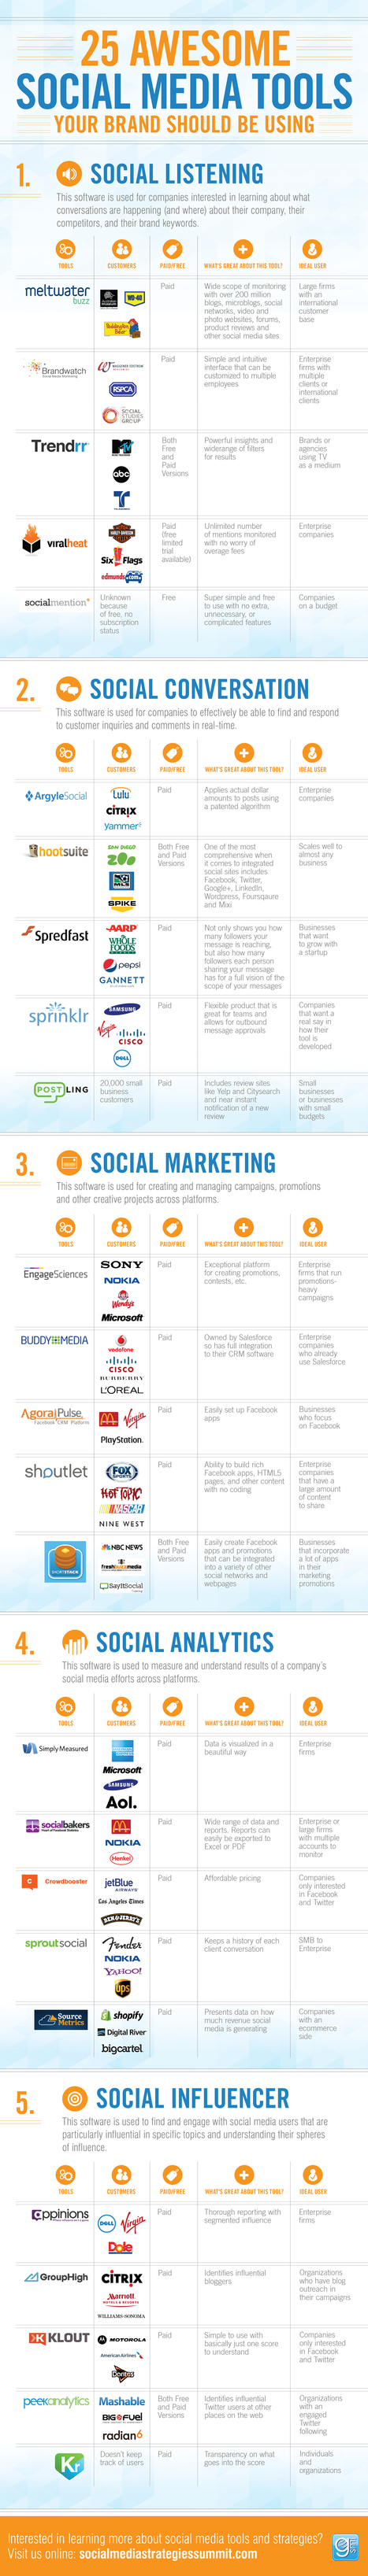 Infographic: 25 Awesome Social Media Tools - Marketing Technology Blog | Social Media Resources & e-learning | Scoop.it